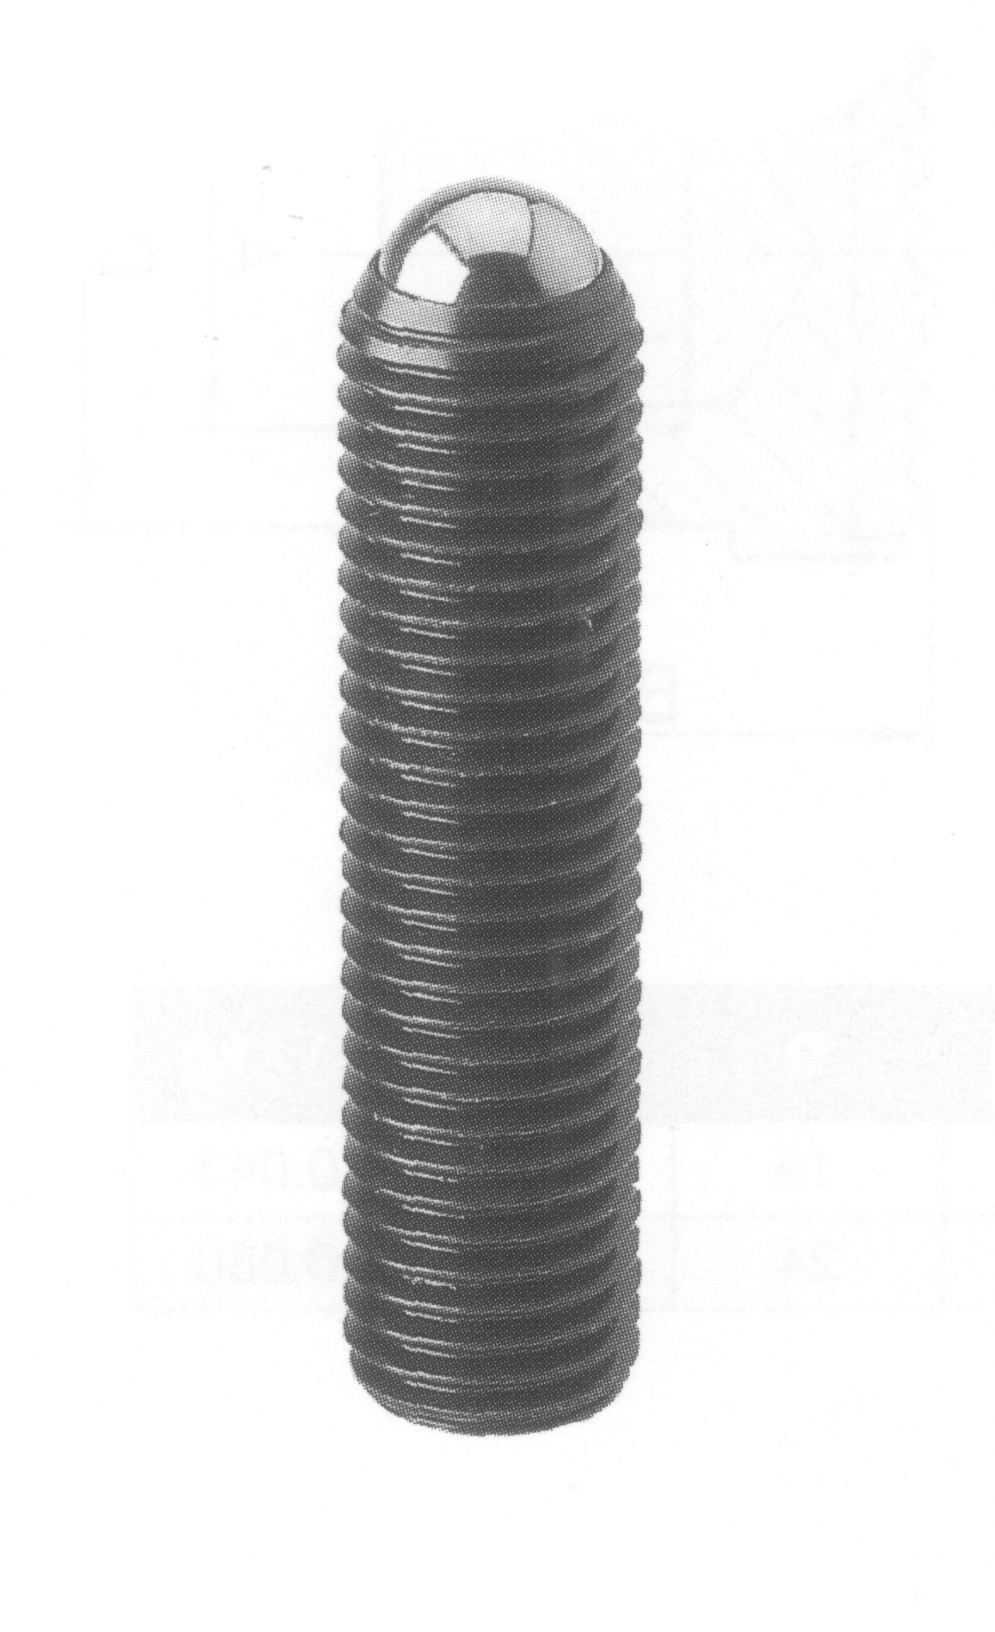 Clamping Screw (A Type)